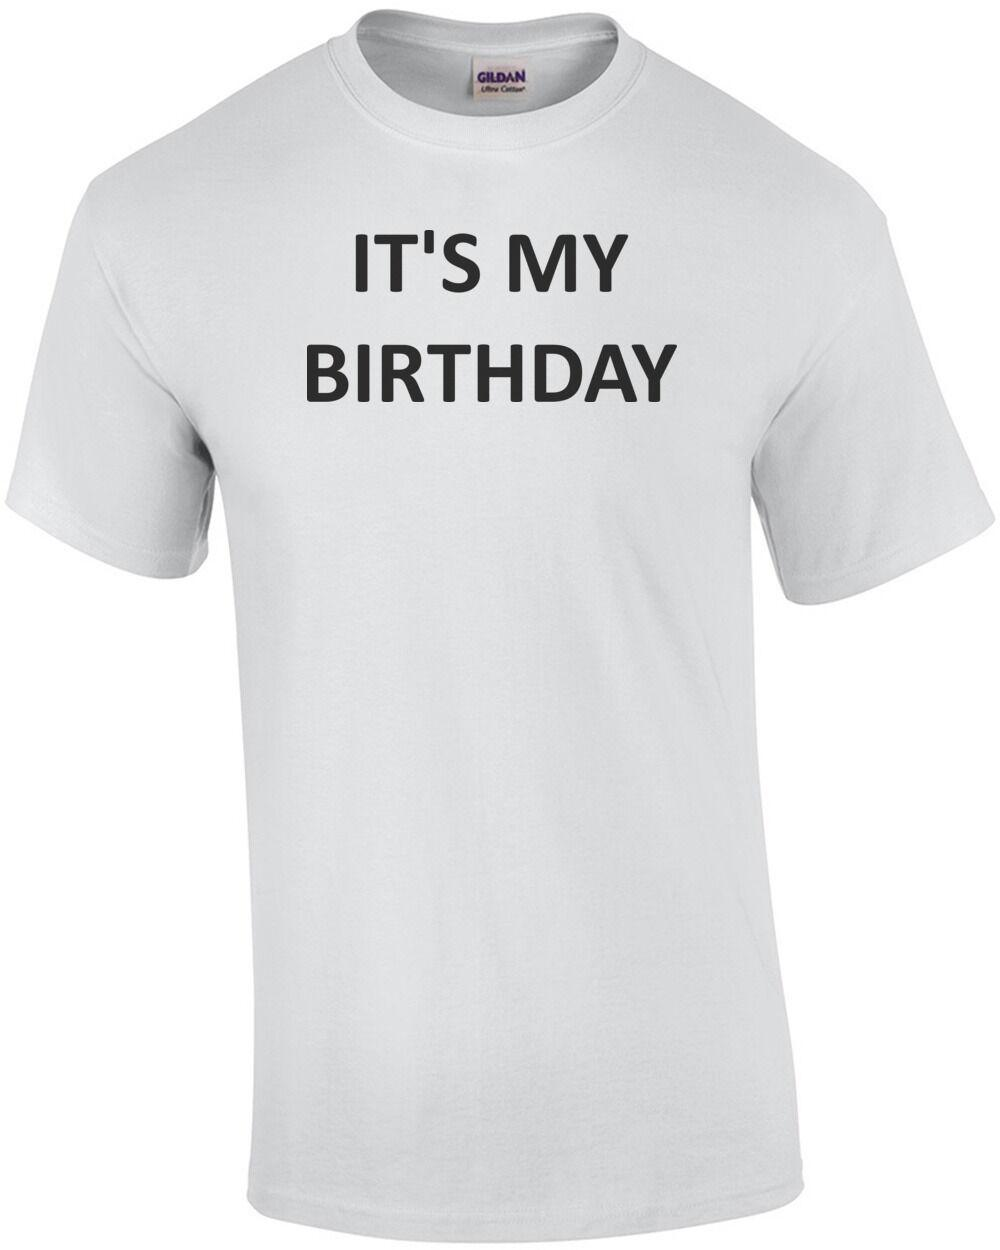 It S My Birthday Happy Birthday Shirt Funny Unisex Casual Top The T